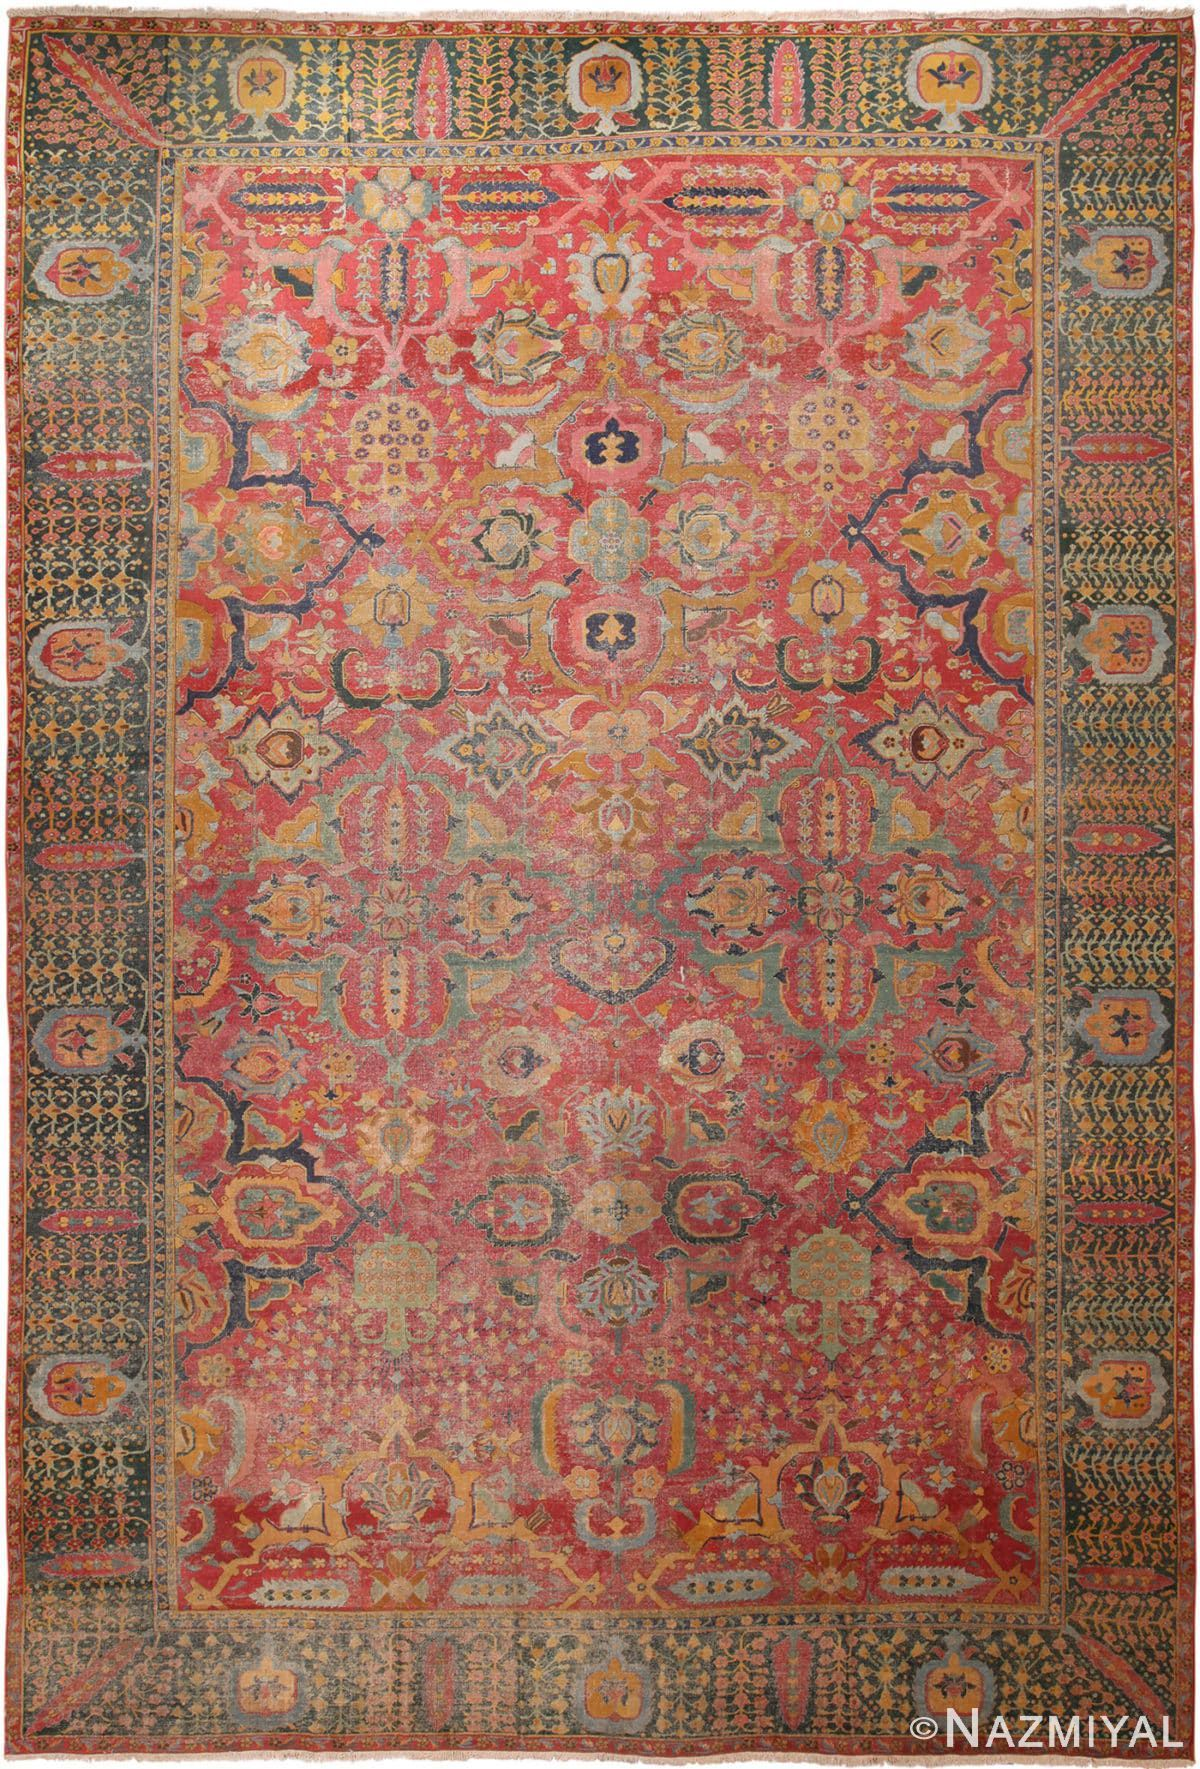 17th Century Antique Persian Isfahan Rug 70046 By Nazmiyal Nyc Modern Persian Rug Antique Rugs Antique Persian Rug